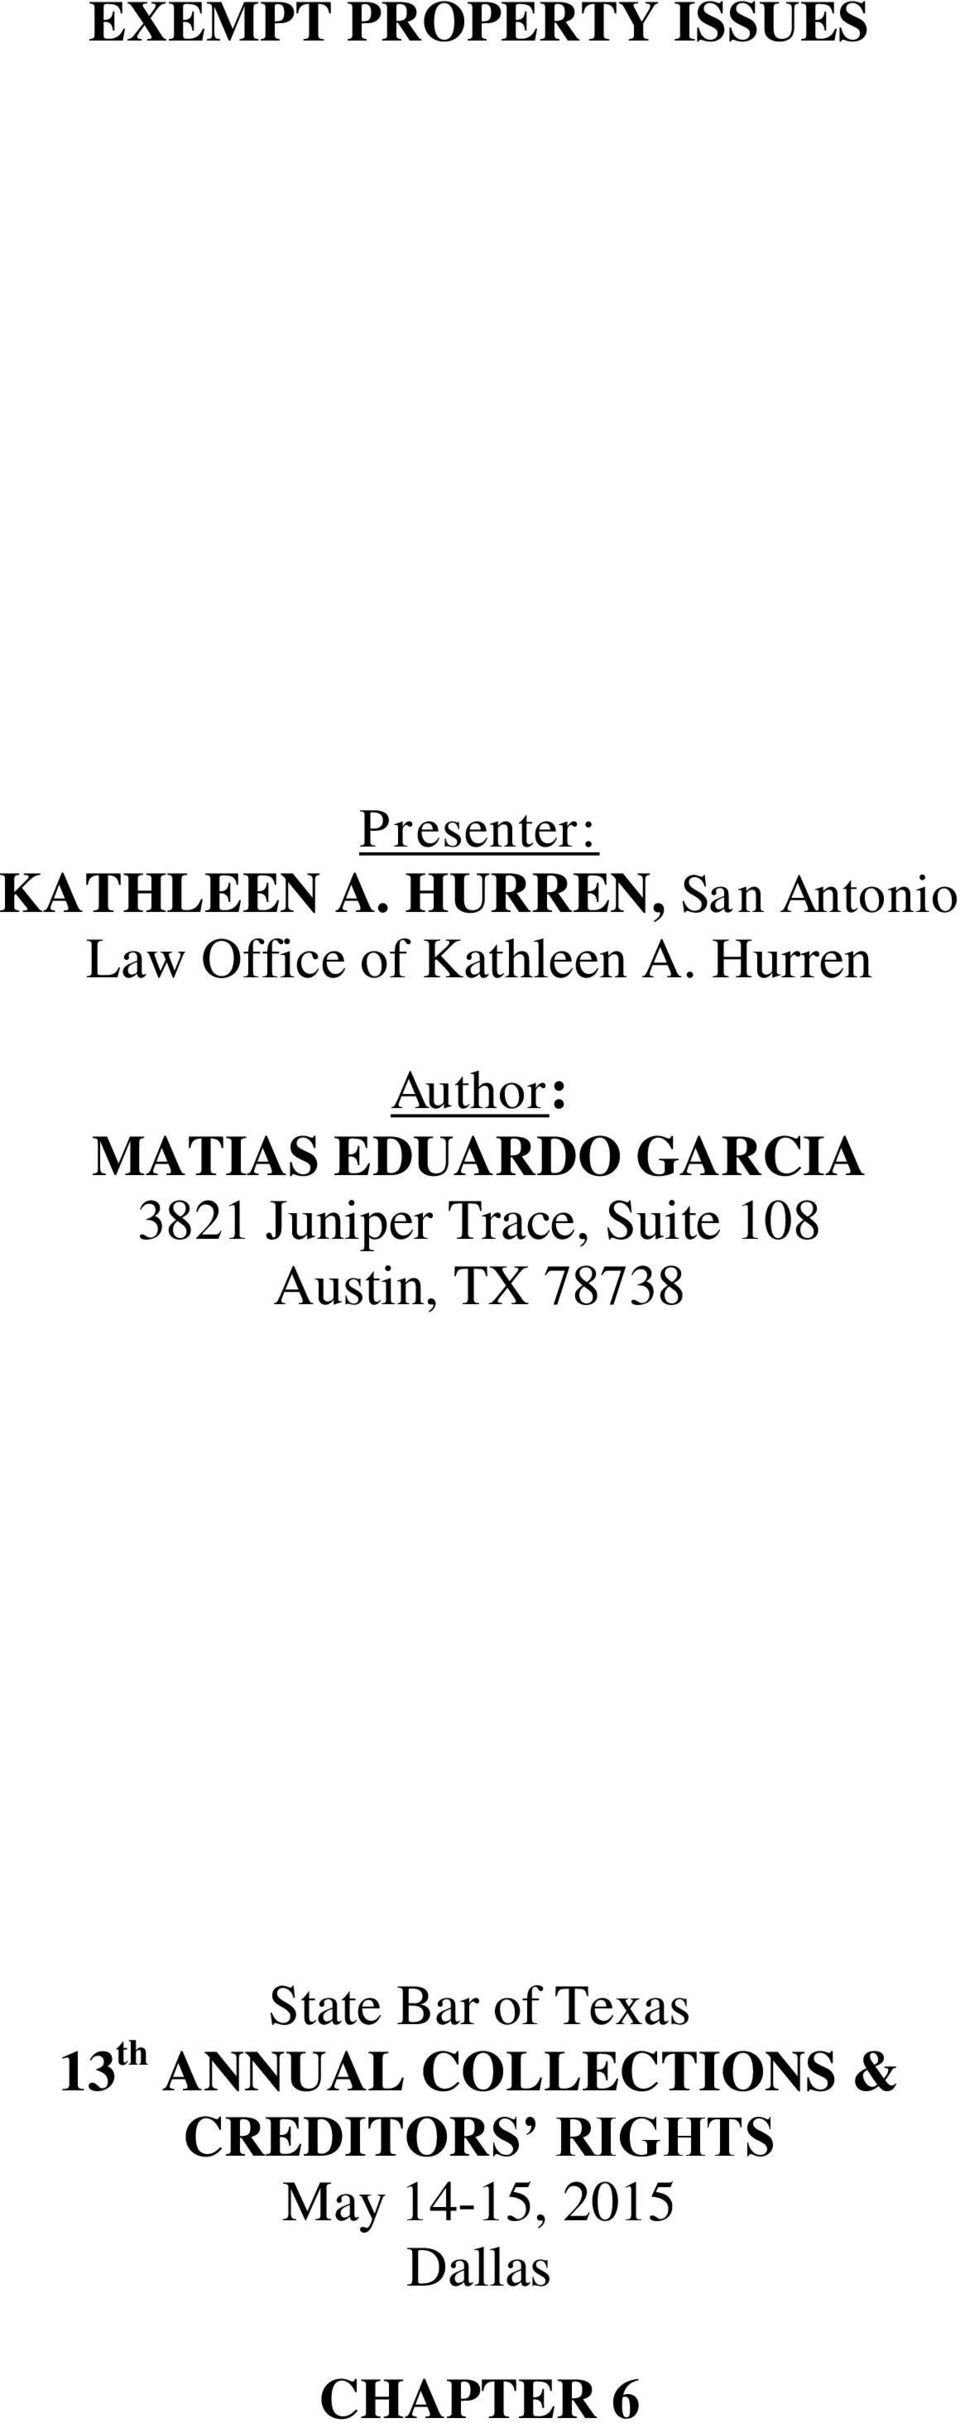 Hurren Author: MATIAS EDUARDO GARCIA 3821 Juniper Trace, Suite 108